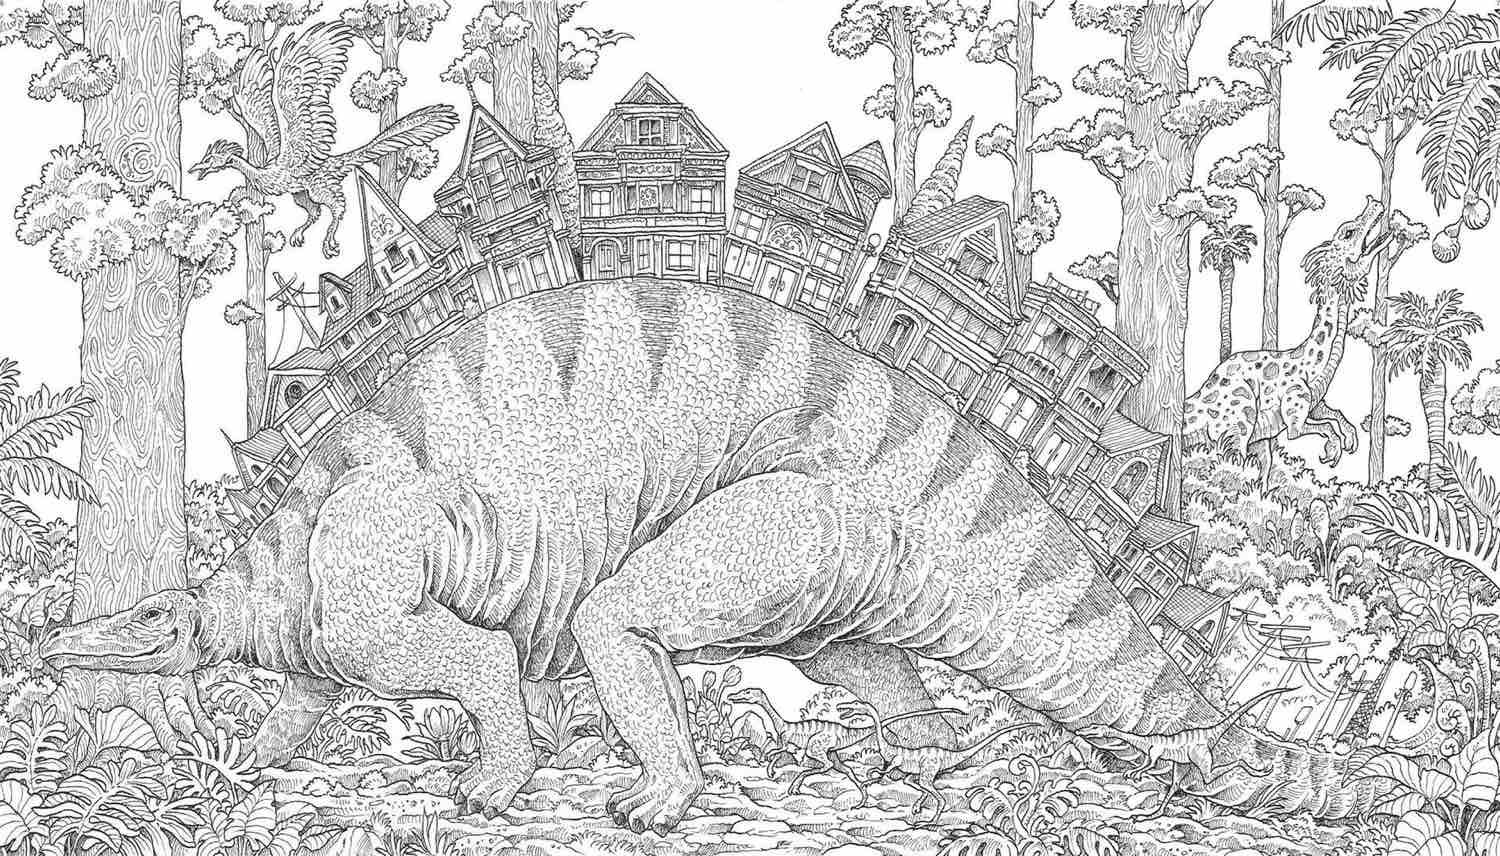 worlds-within-worlds-coloring-book-by-kerby-rosanes-2